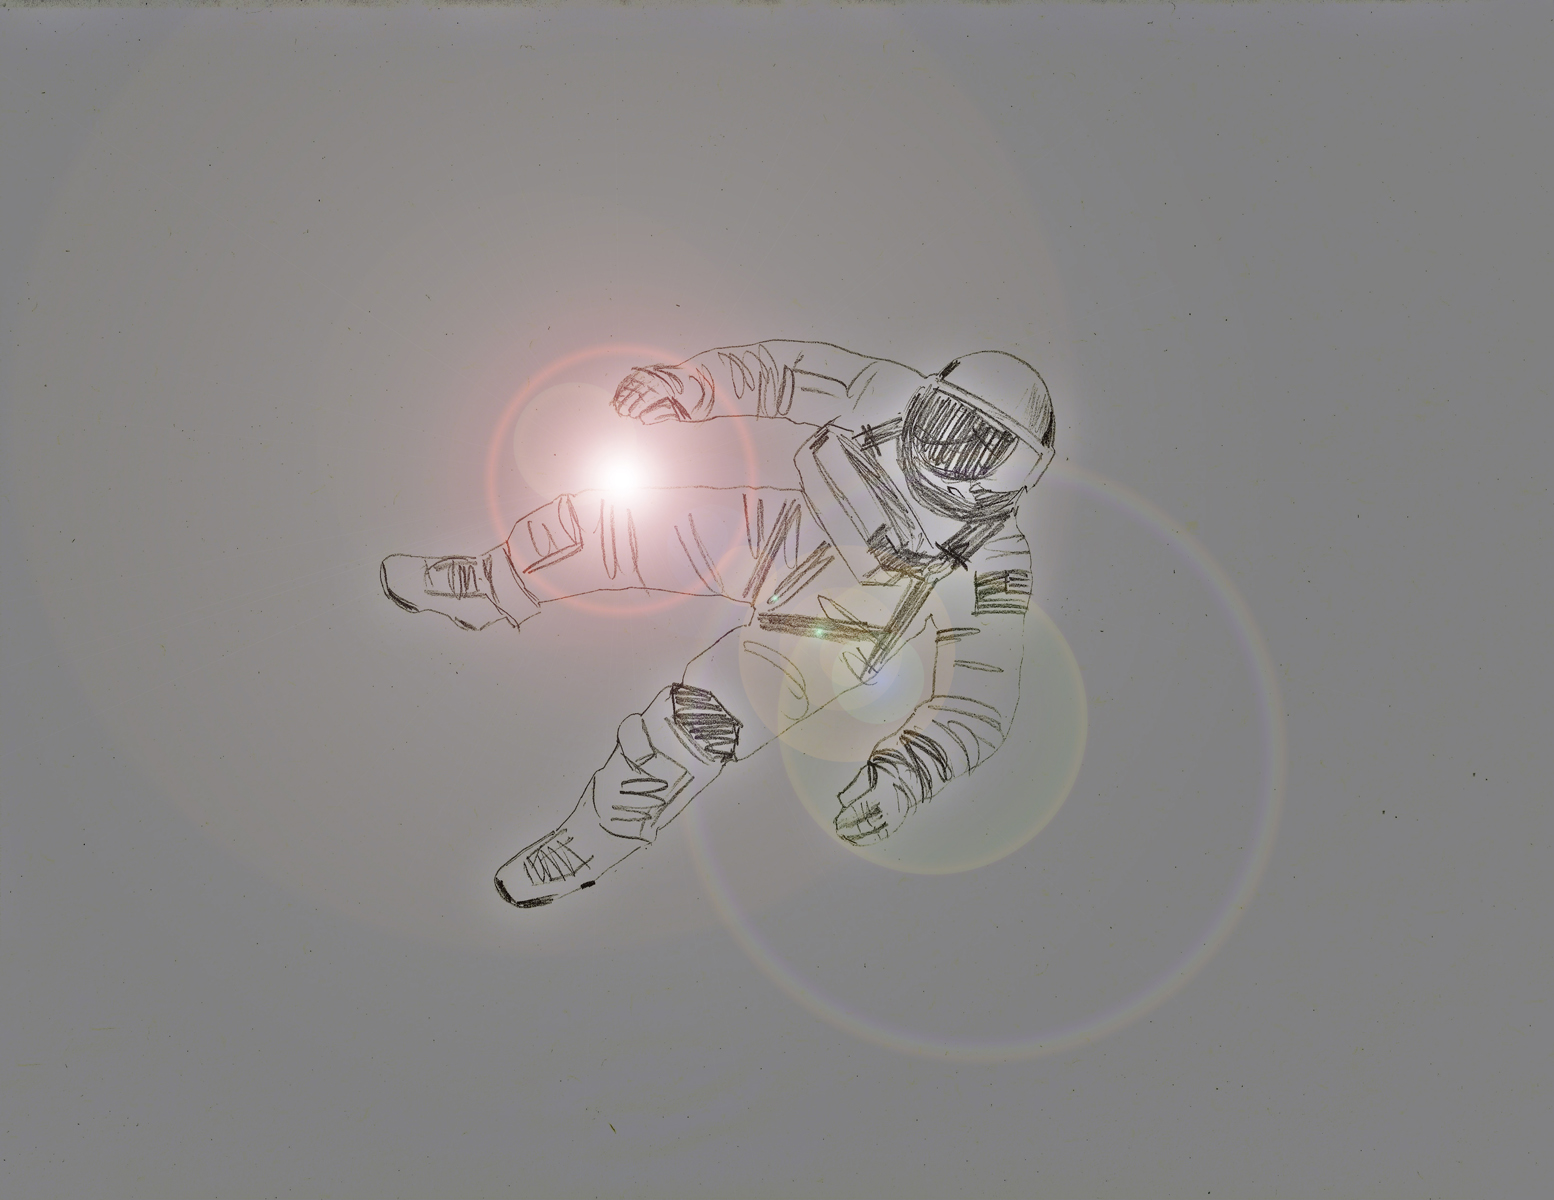 A pencil drawing of an astronaut in space on a grey background, with lens flare.